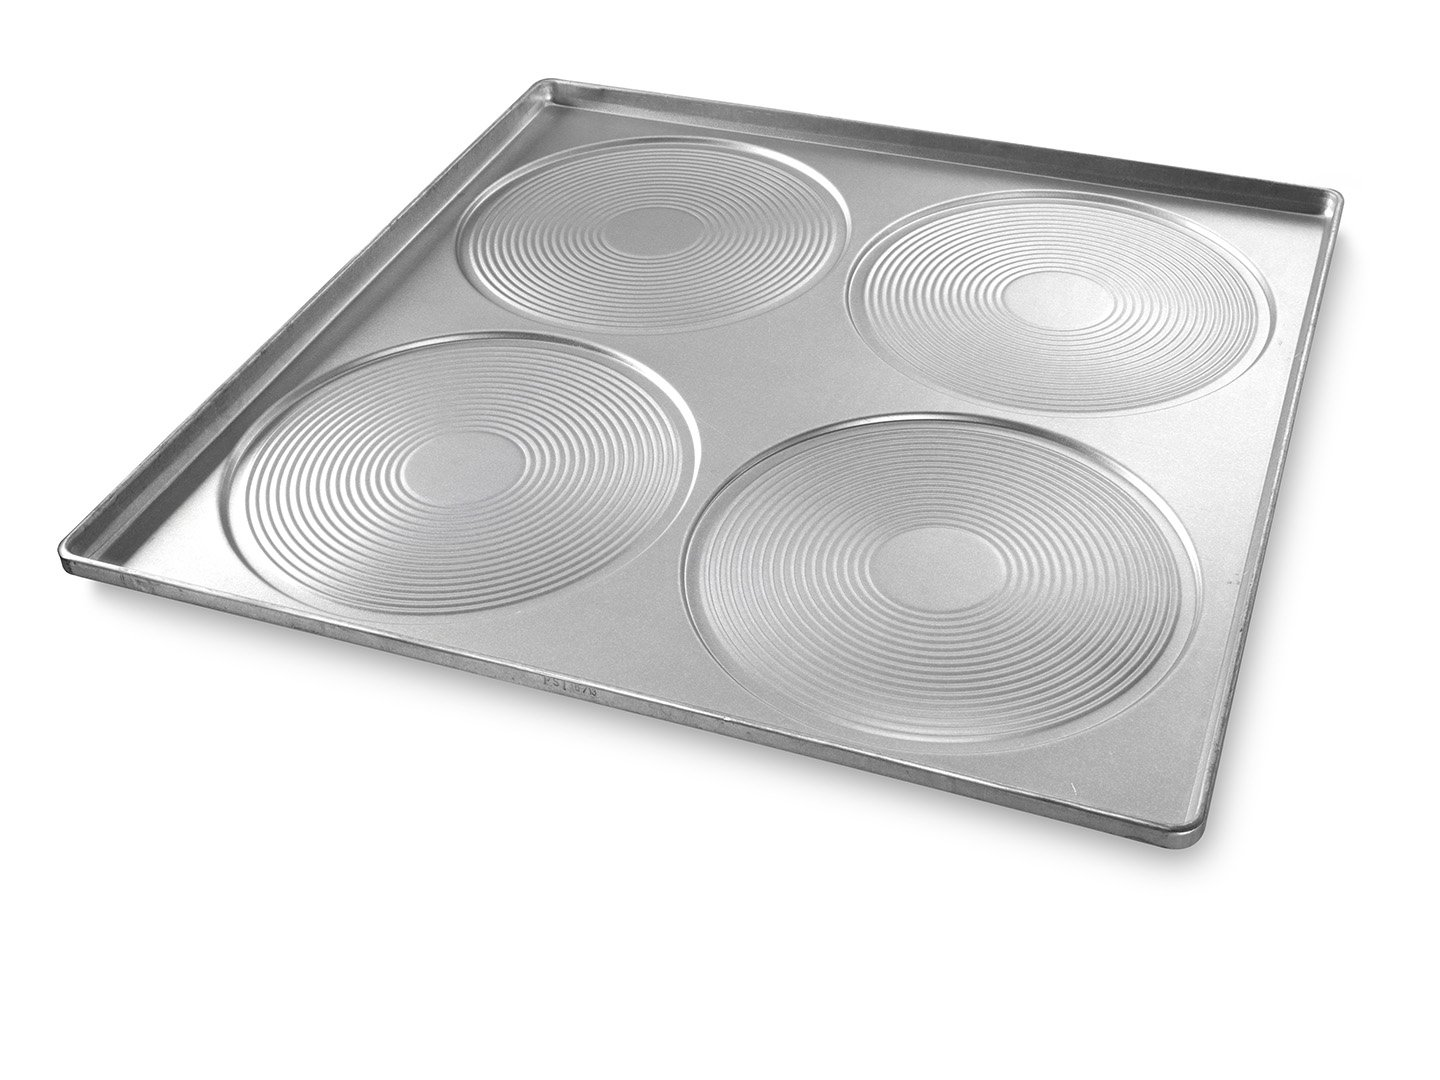 Round Pizza Pan – AMERICOAT® Coating